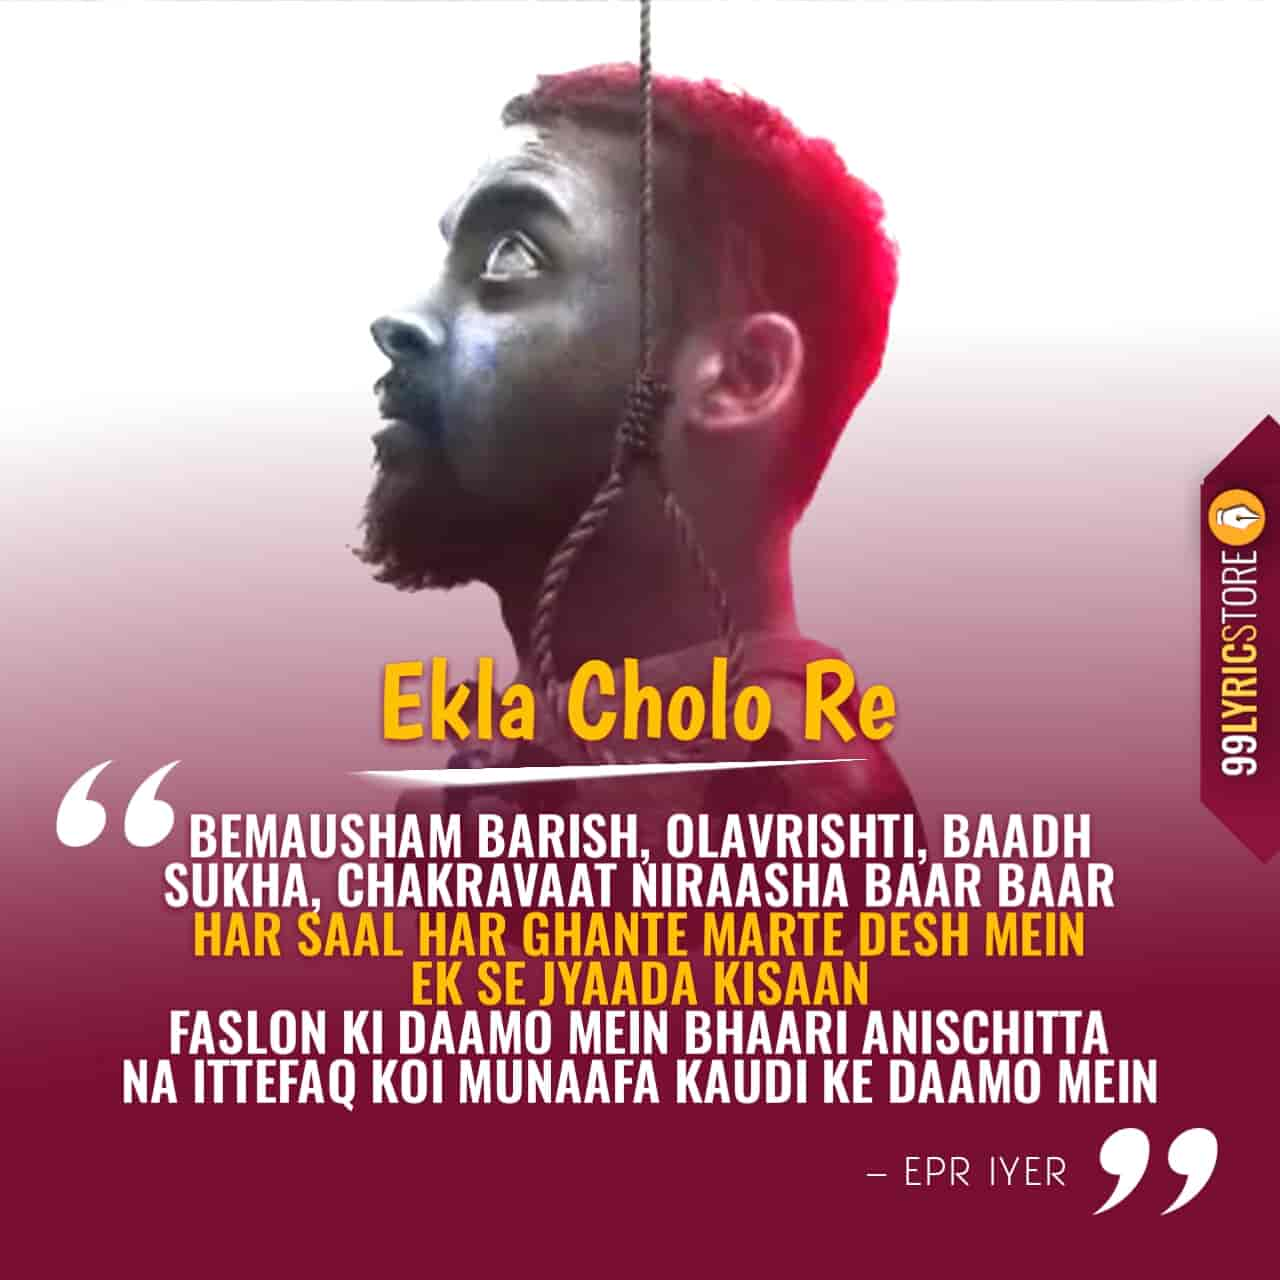 Ekla Cholo Re Lyrics Images Epr